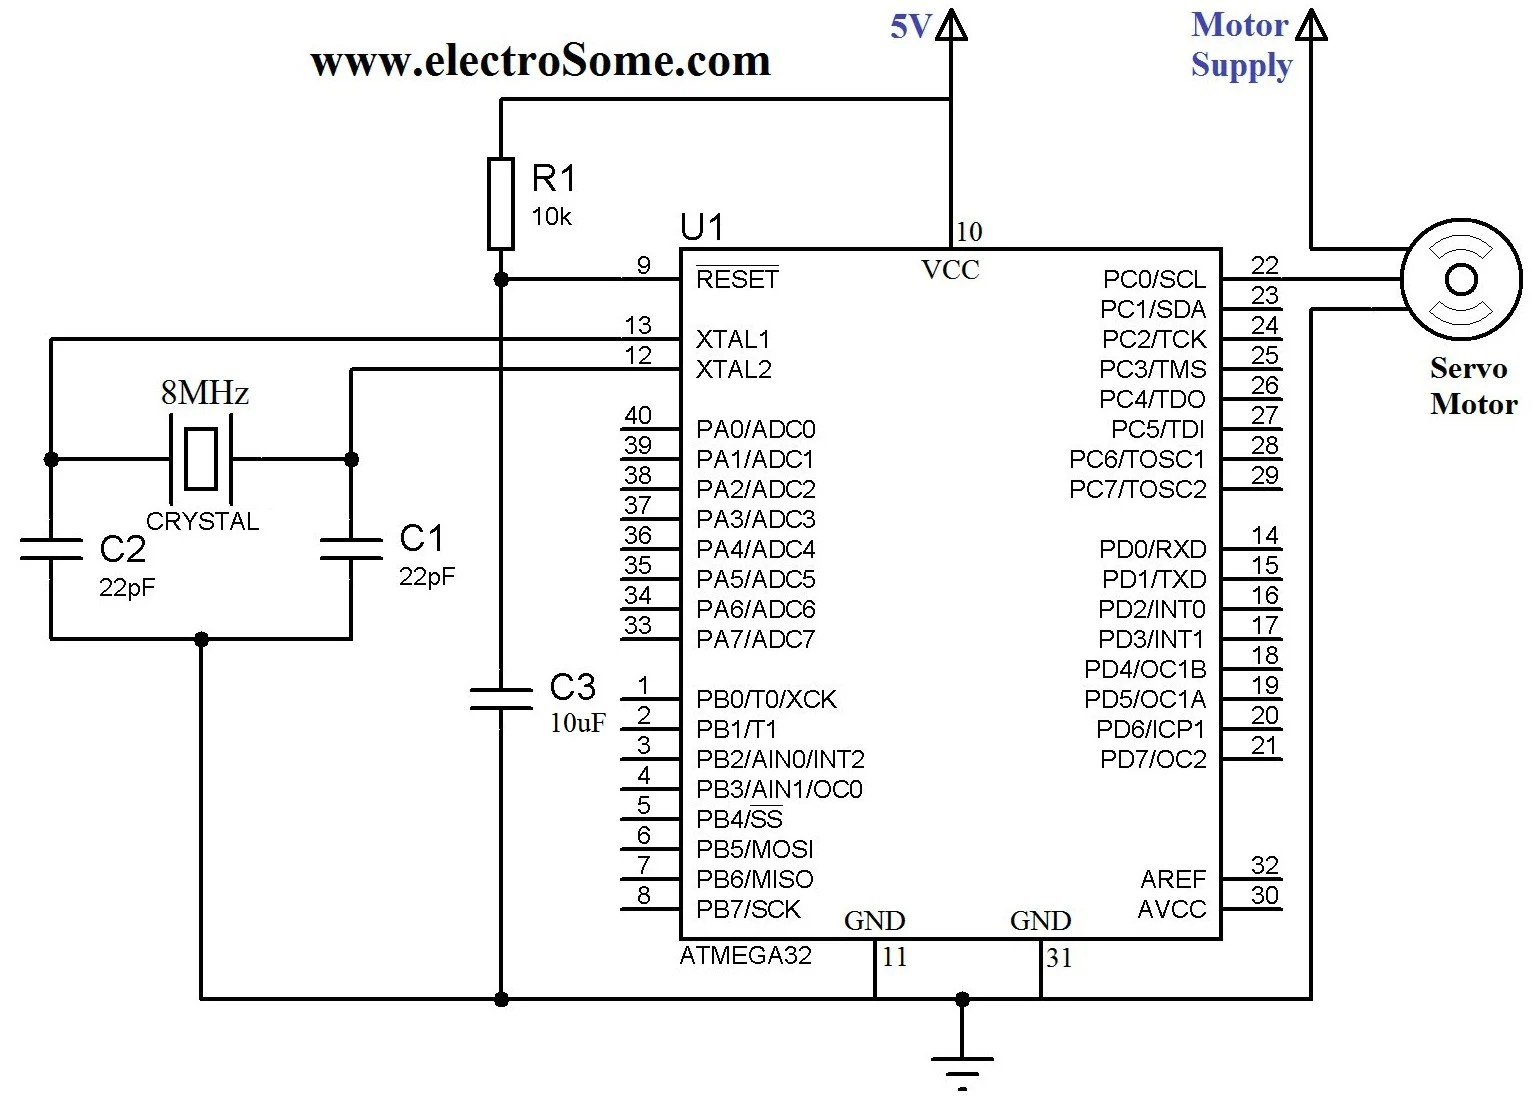 swm 32 wiring diagram contactor start stop interfacing servo motor with atmega32 atmel avr